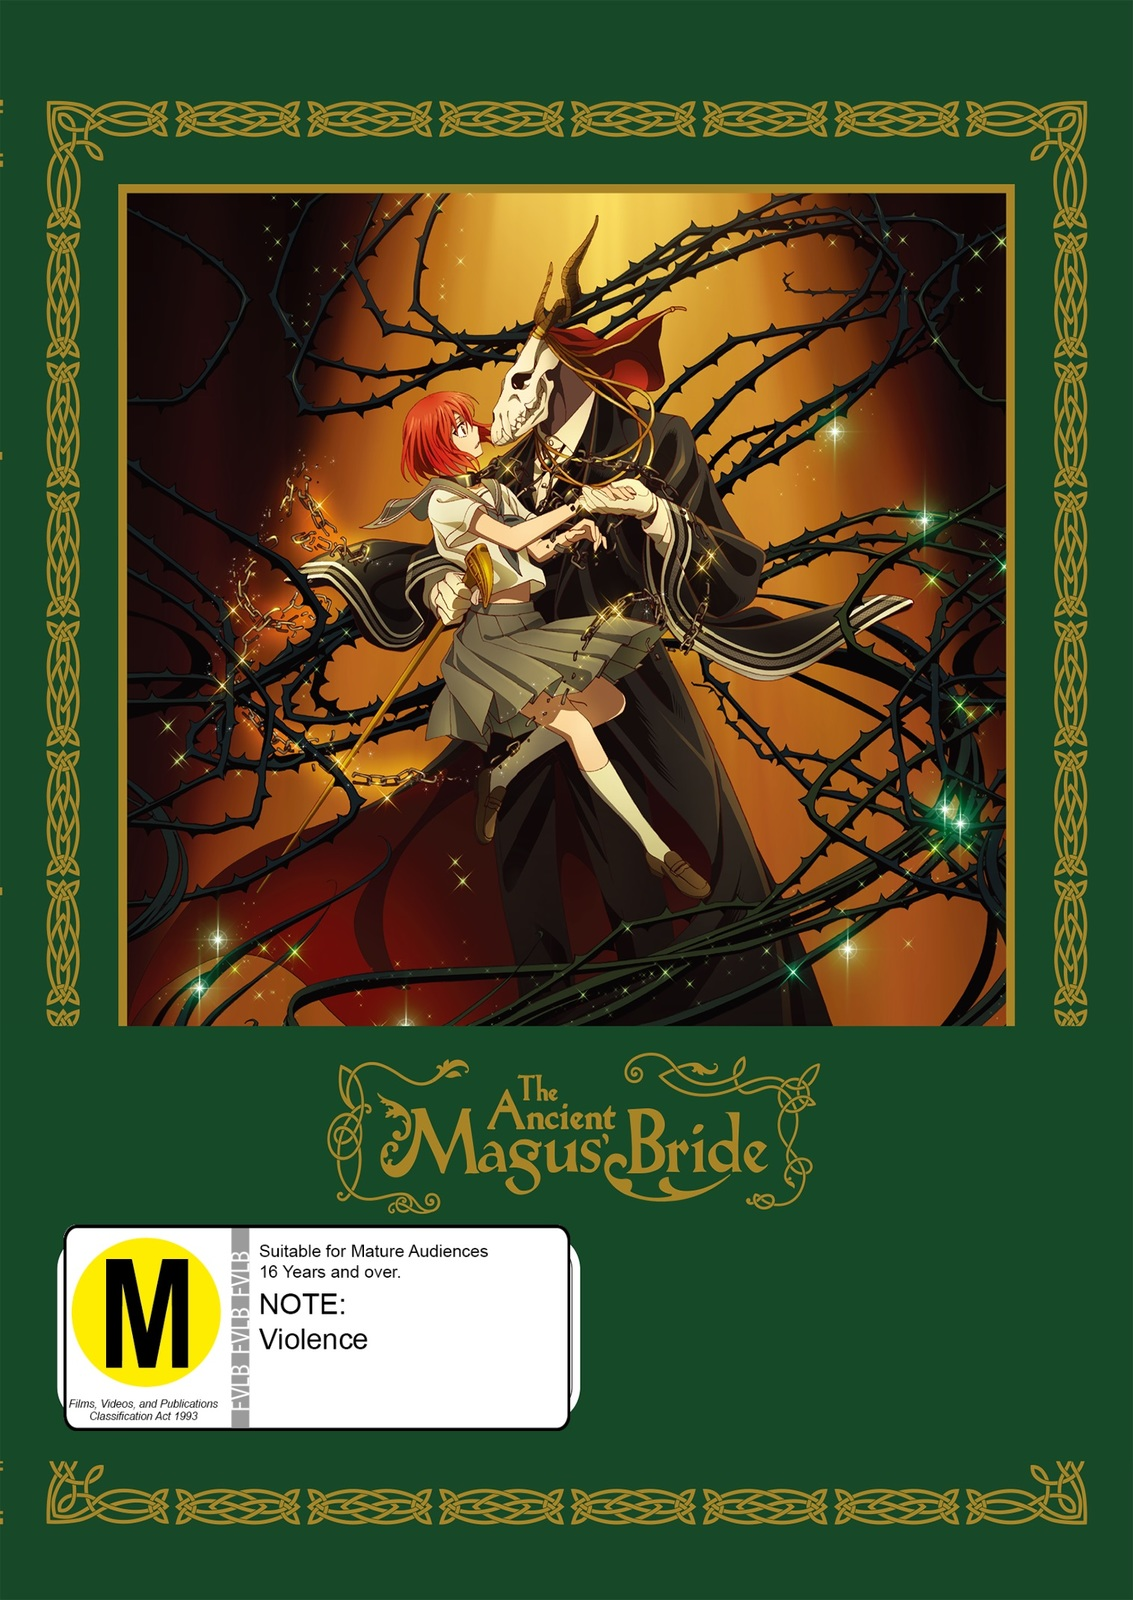 The Ancient Magus Bride: Part 1 on DVD, Blu-ray image